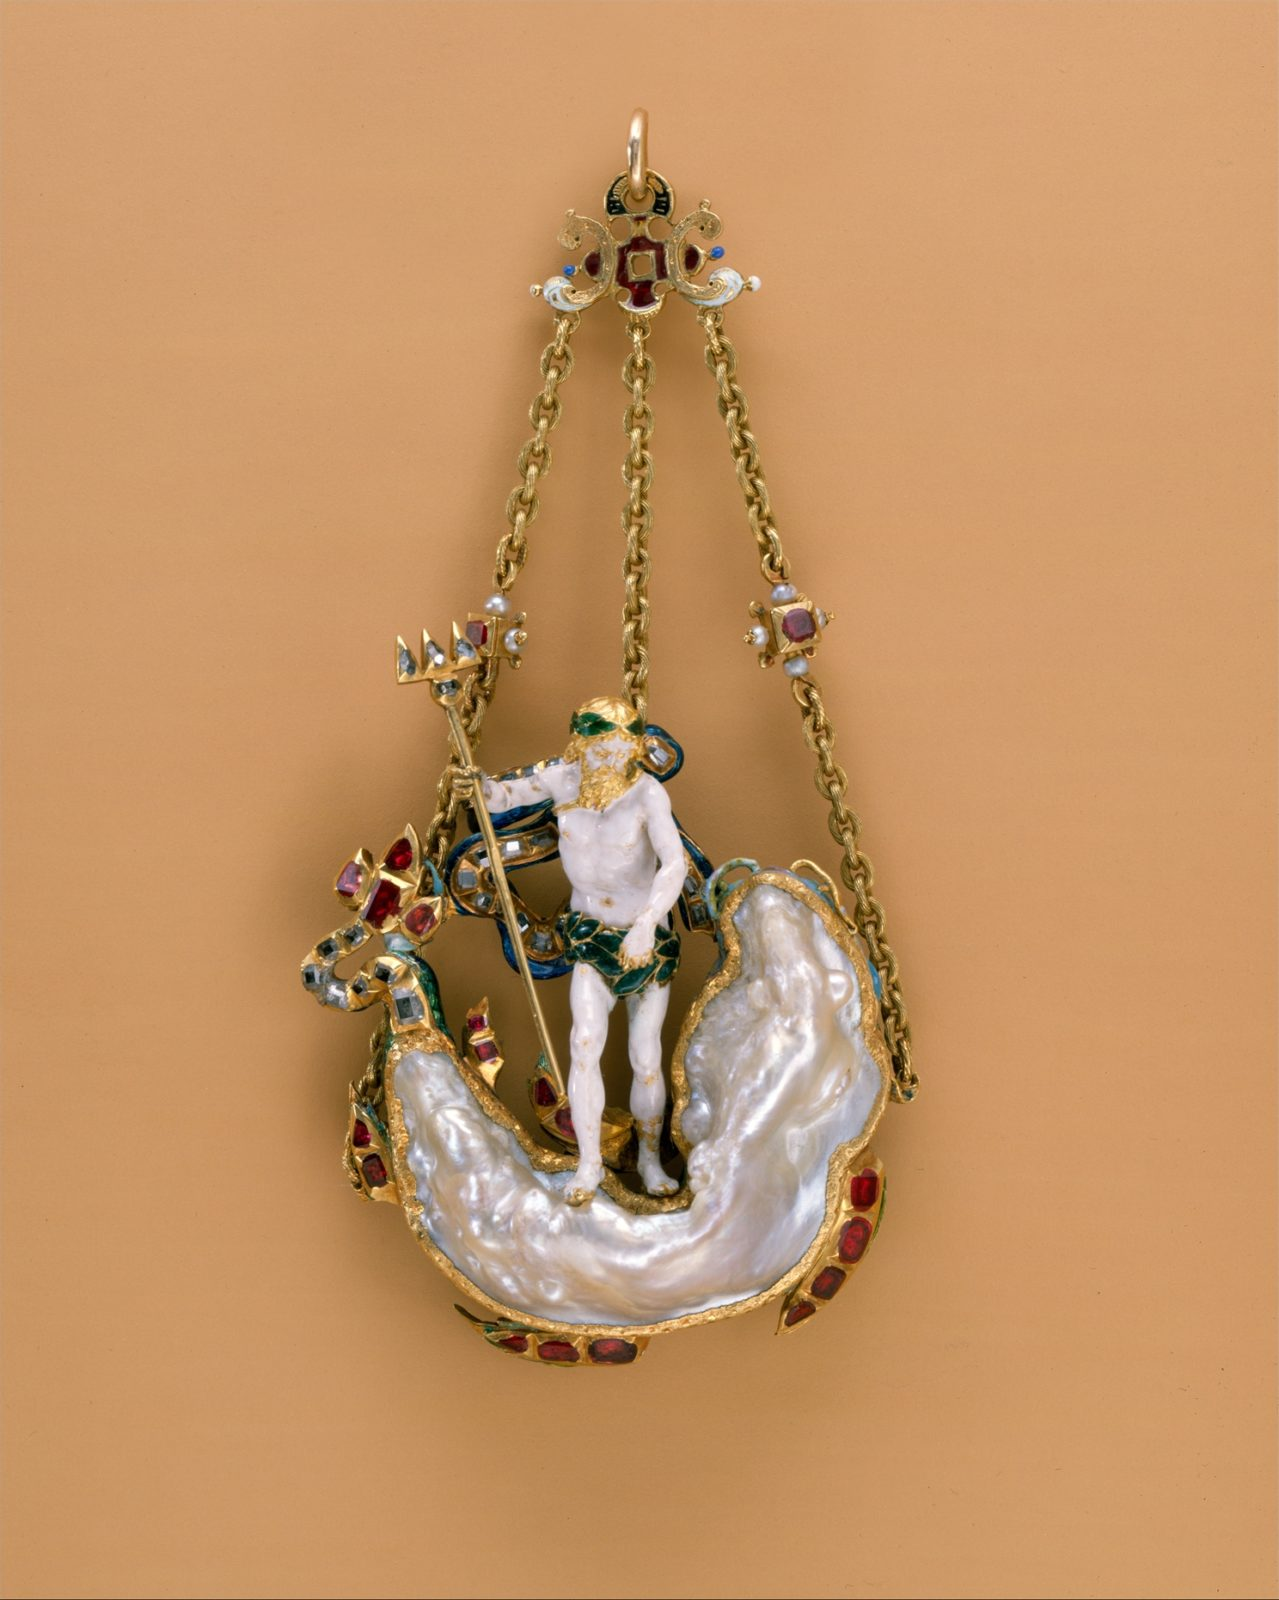 pendant-in-the-form-of-neptune-and-a-sea-monster-b18dd7-1600.jpg